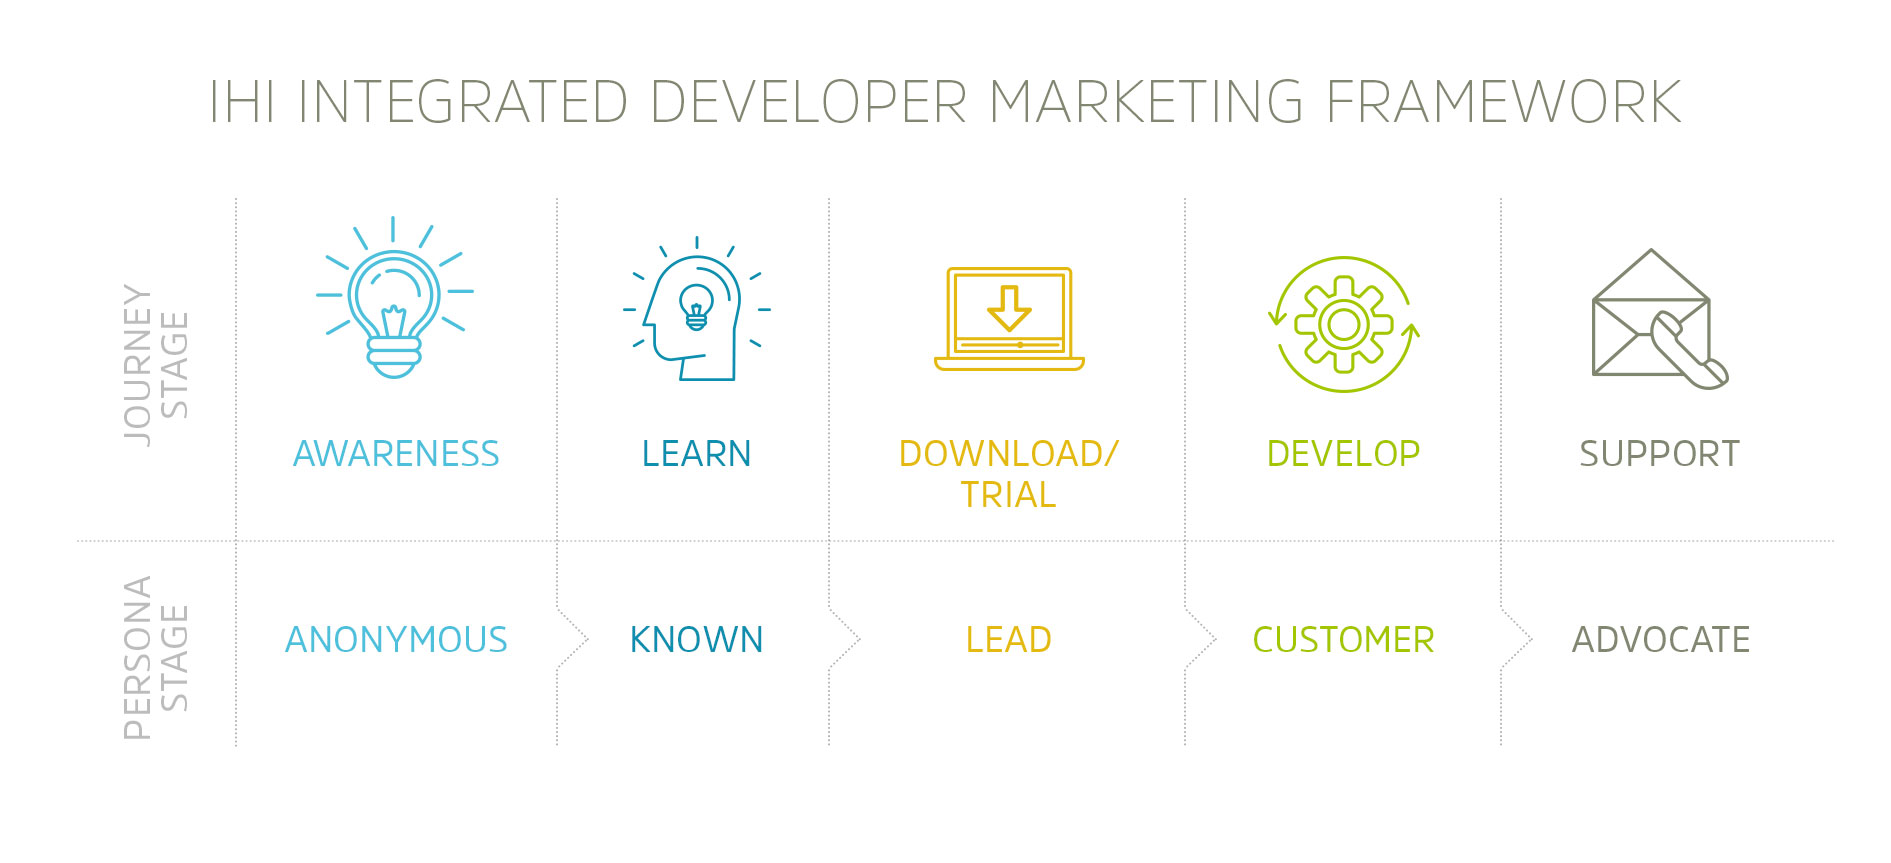 IHI Integrated Developer Marketing Framework